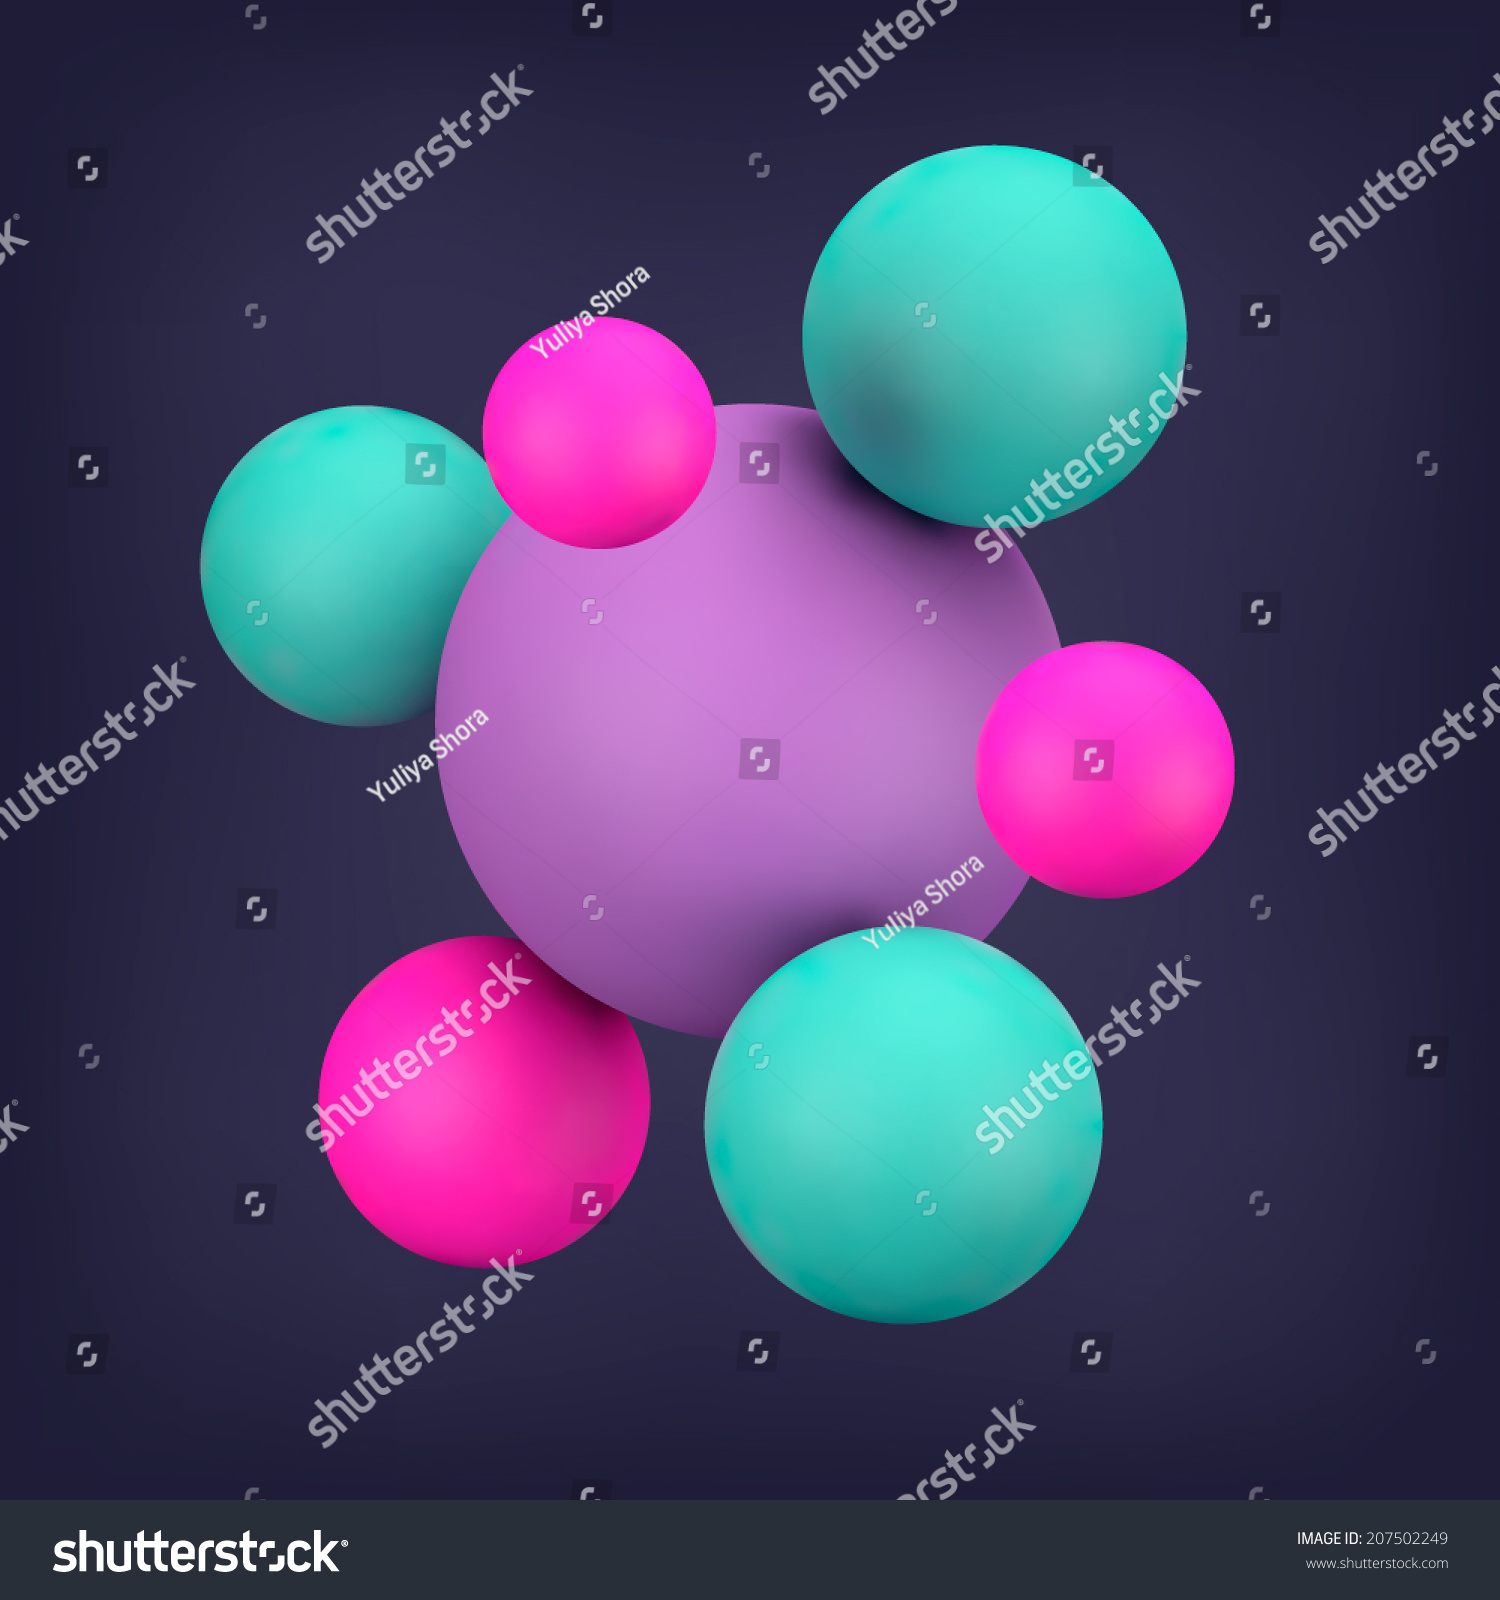 amazing 3d abstract ball - photo #39